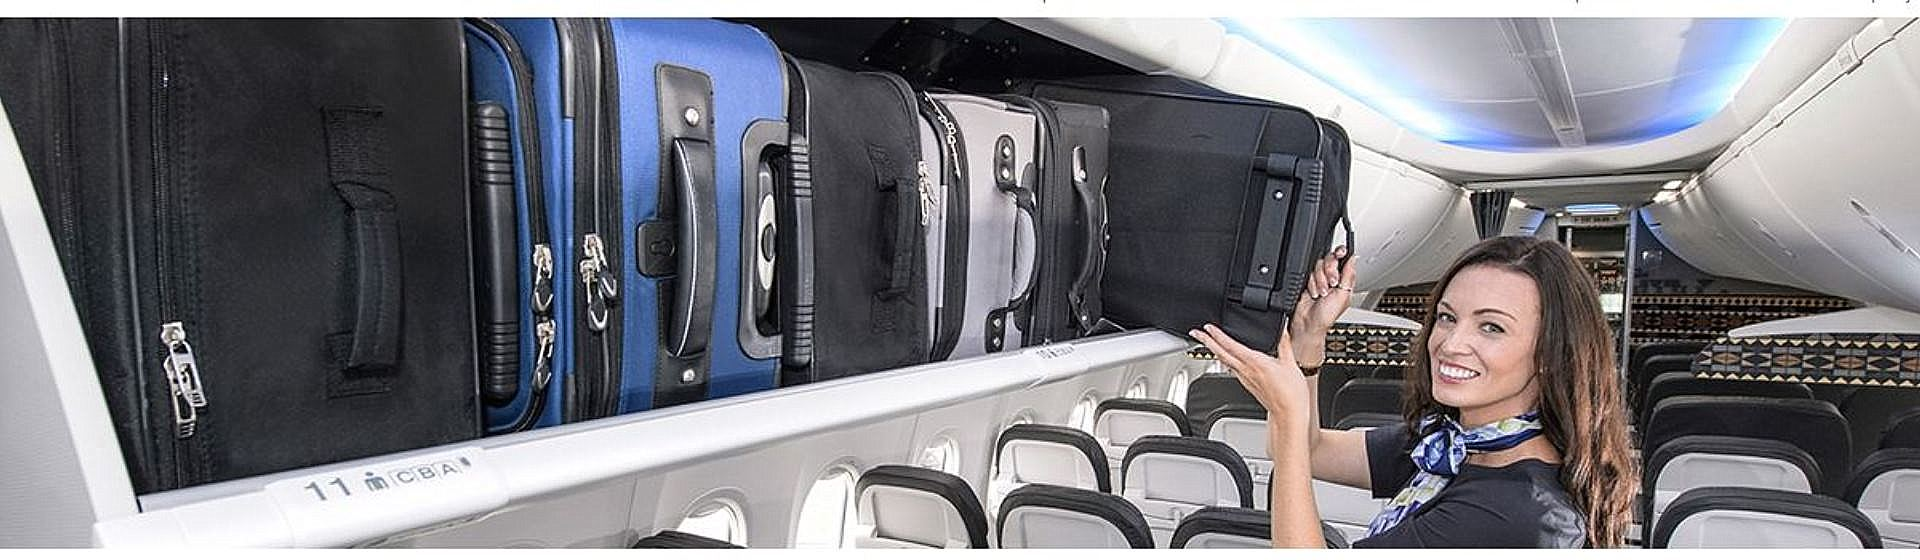 Boeing Space Bins